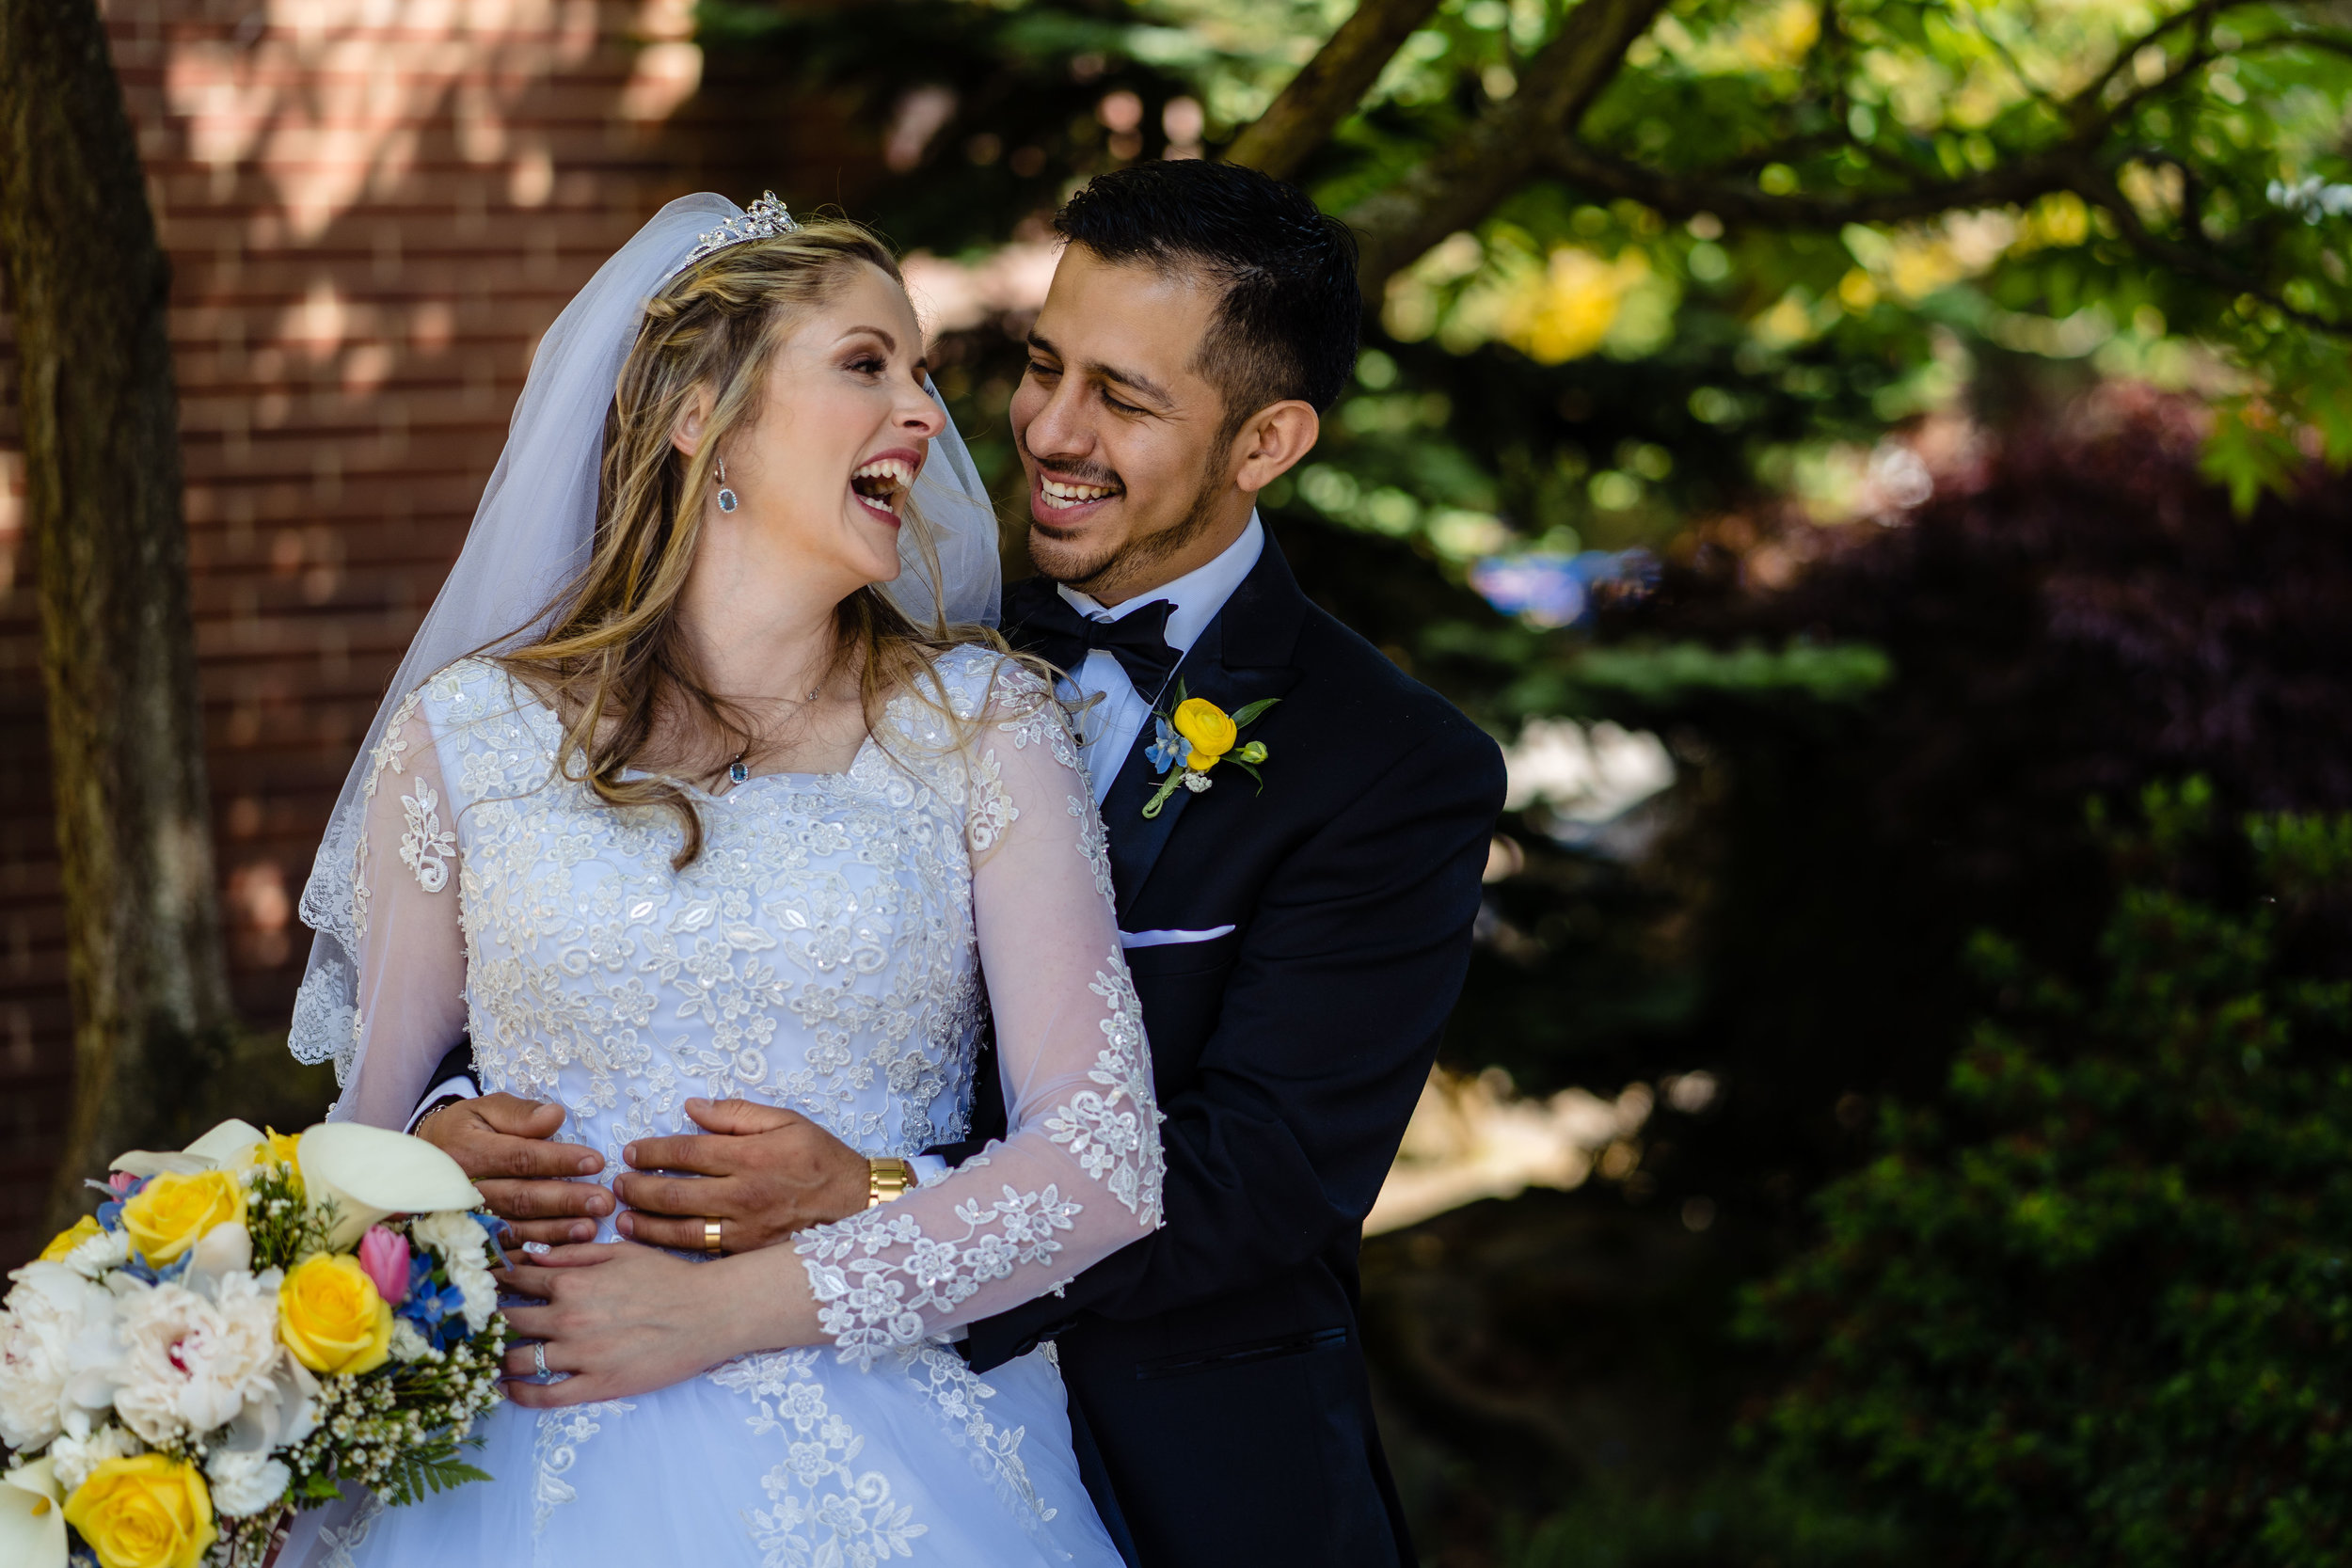 Christina & Saul laugh a lot together. I love this image of them after their wedding.